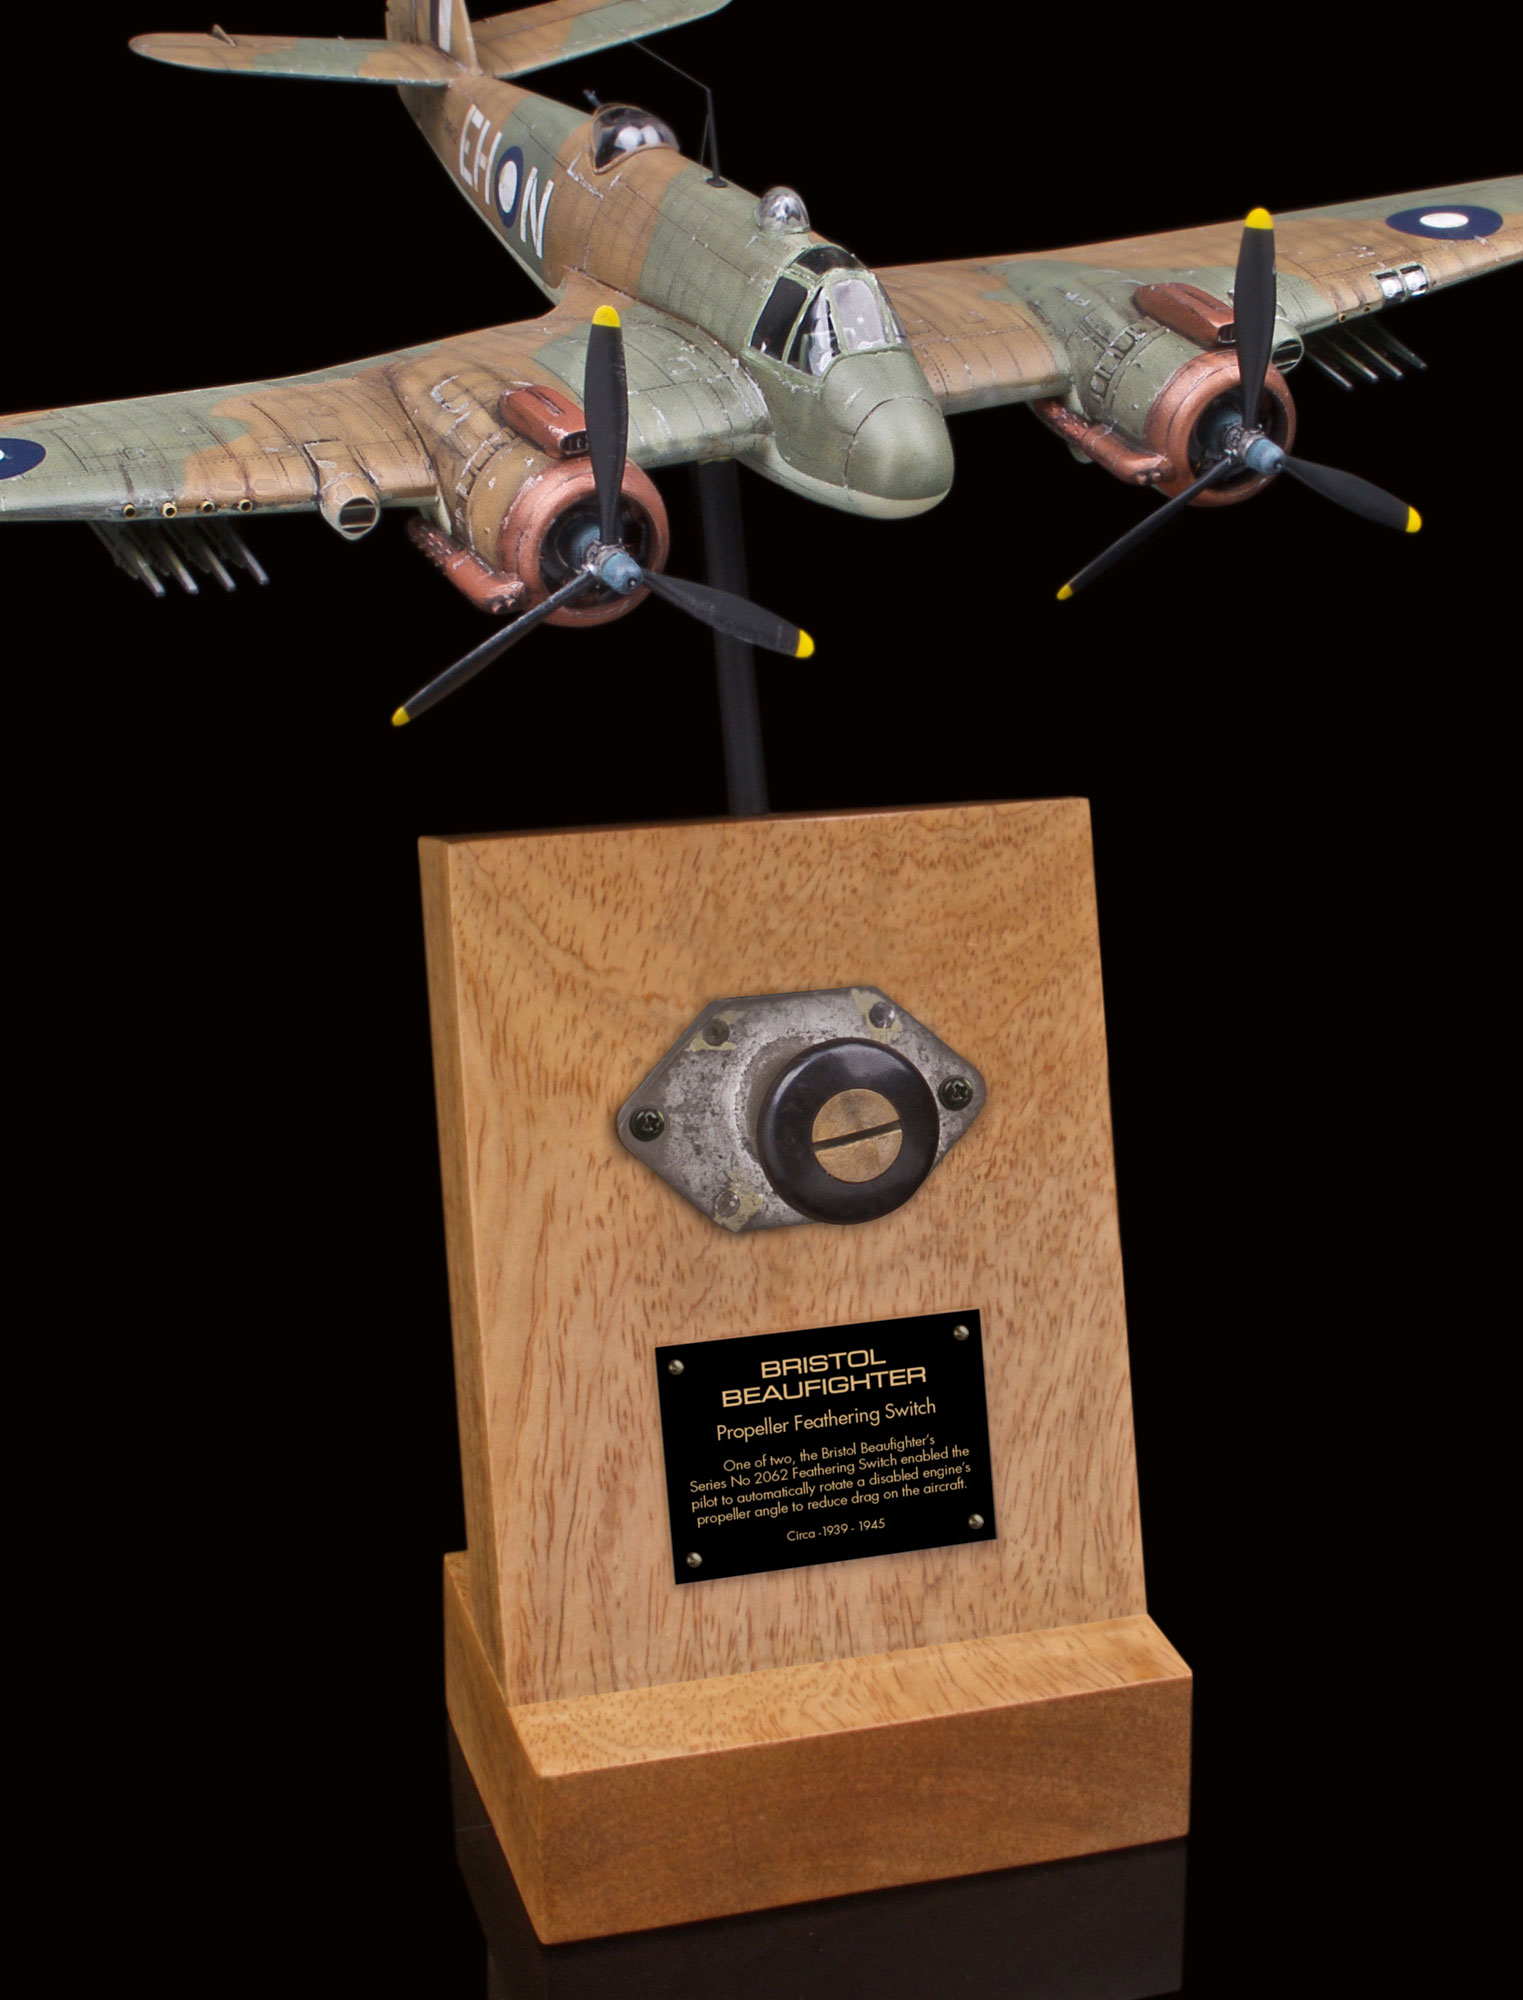 BRISTOLBEAUFIGHTER SERIES No 206 PROPELLER FEATHERING SWITCH